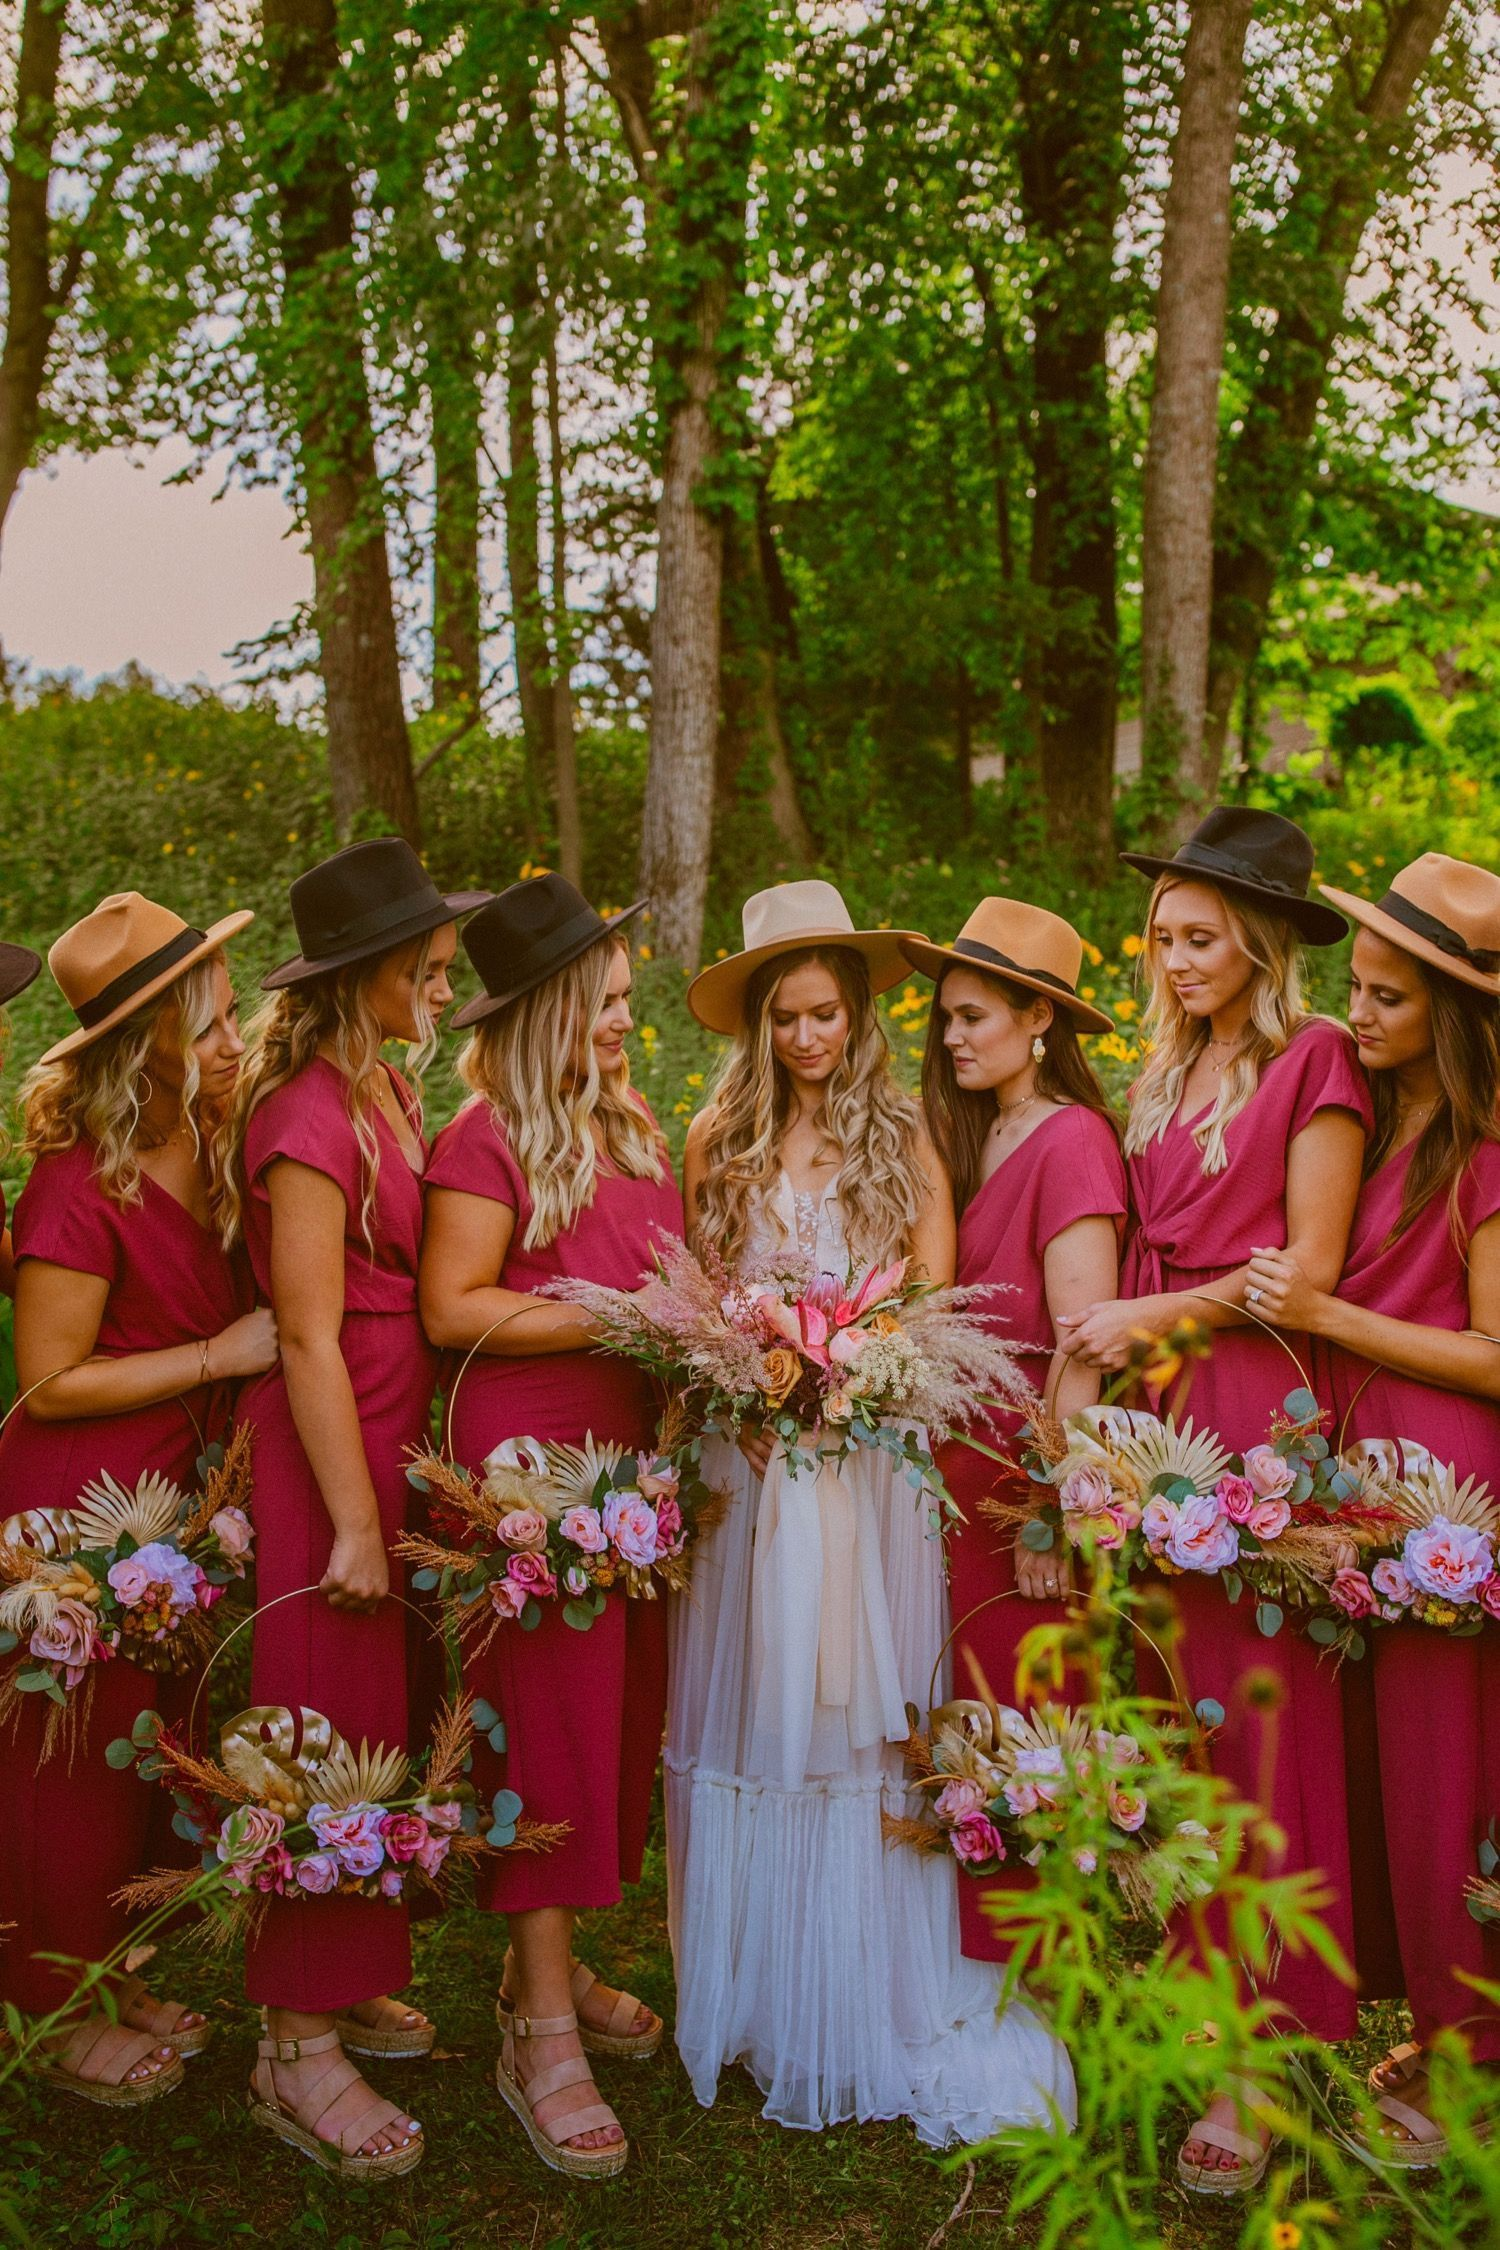 Literally the prettiest bride and her bridesmaids in Cedar Rapids, Iowa with pink bridesmaids JUMPSUITS and the most original wooden pink baskets holding their bouquets for their bouquets rings! Seriously to die for and the best pop of color for the most green forrest wedding! Also, I'm obsessed with the the cutest hats that they all wore!!! Best styled bridal party everrrrr! | Photo but: Olivia Markle Photography #bridesmaides #cedarrapidswedding #elopement #wedding #bridalpartystyle #pink #bri #bridesmaidjumpsuits